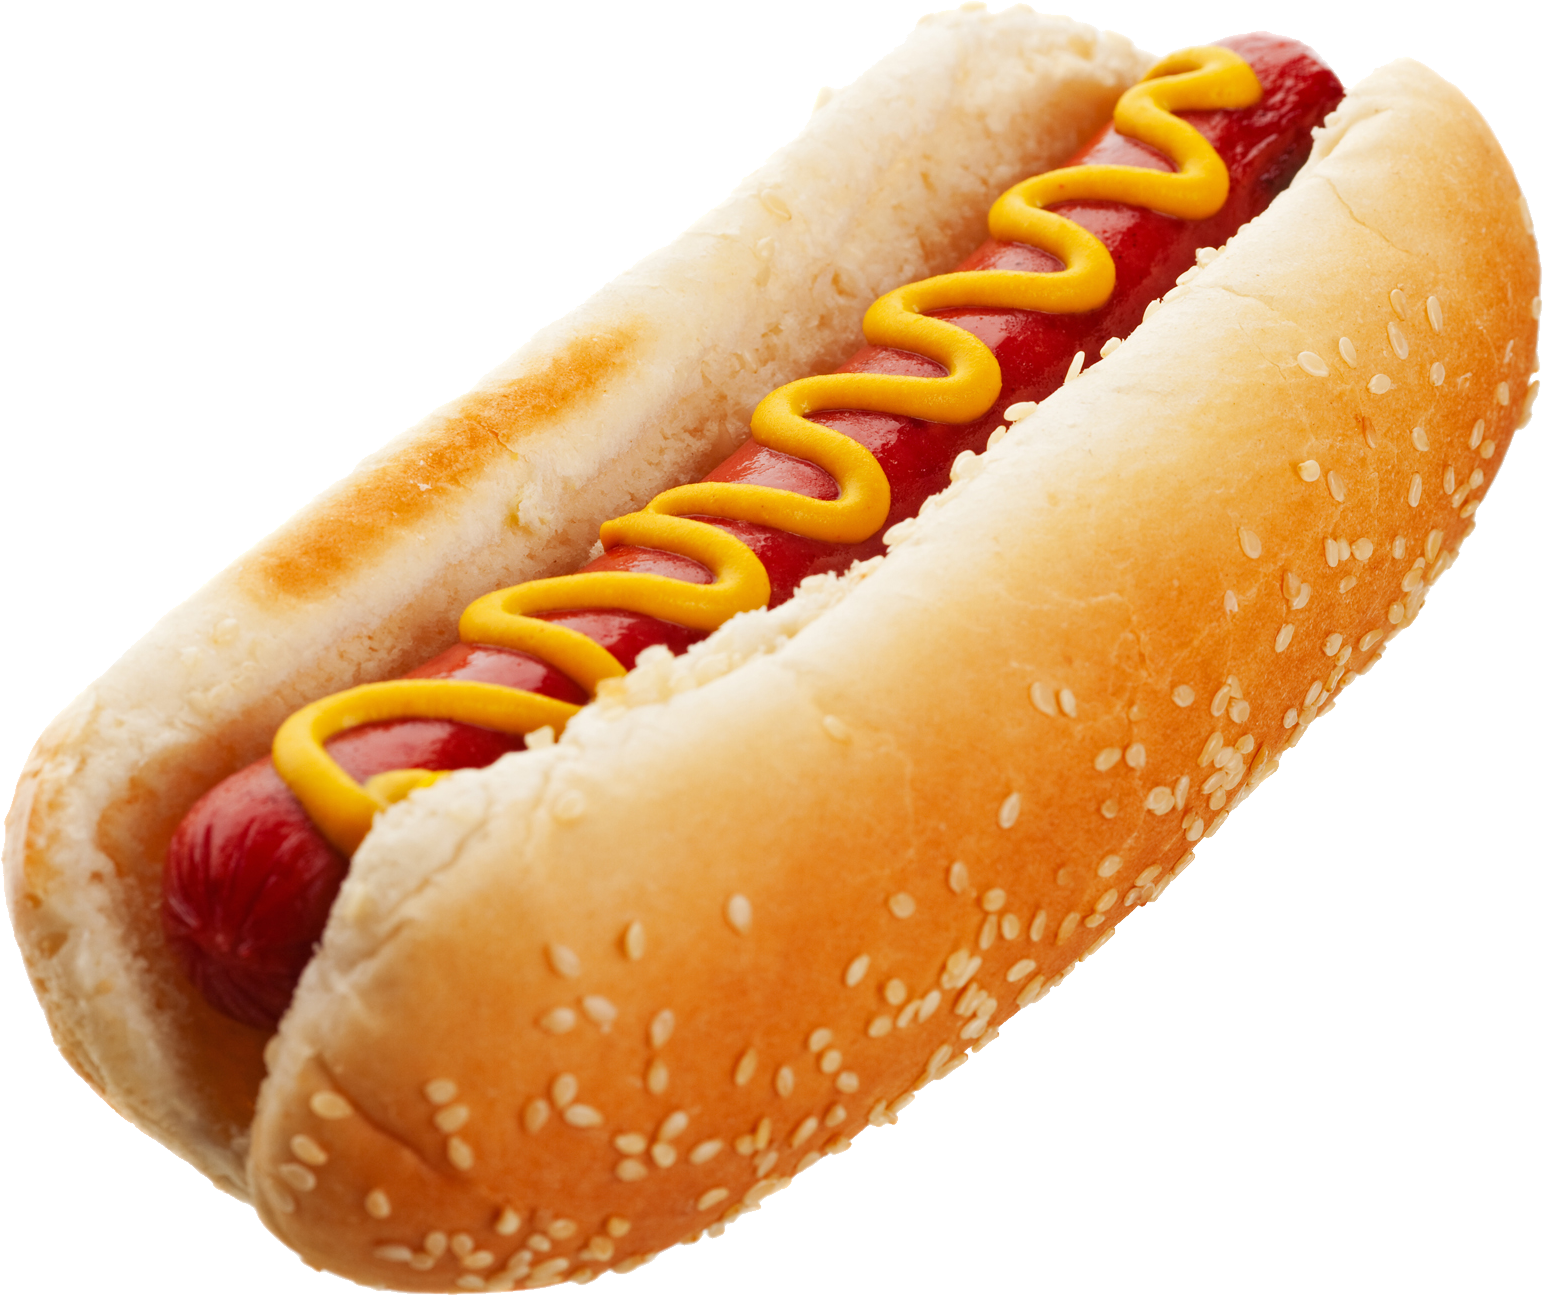 Png transparent images free. Grilling clipart hot dog grill